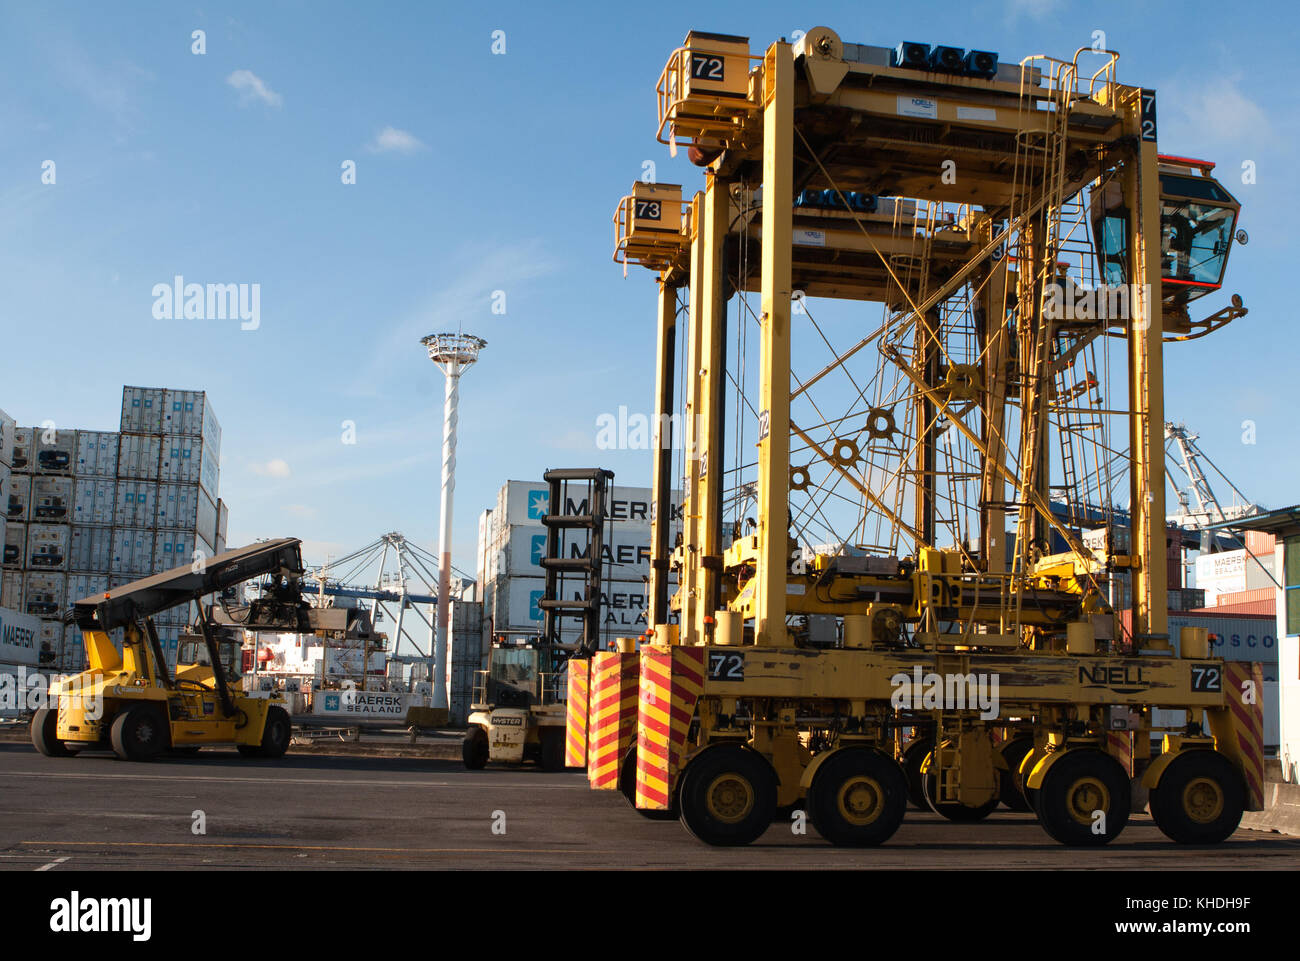 AUCKLAND, NEW ZEALAND - 17th APRIL 2012: Noell straddle carriers and stack of containers at port of Auckland. - Stock Image